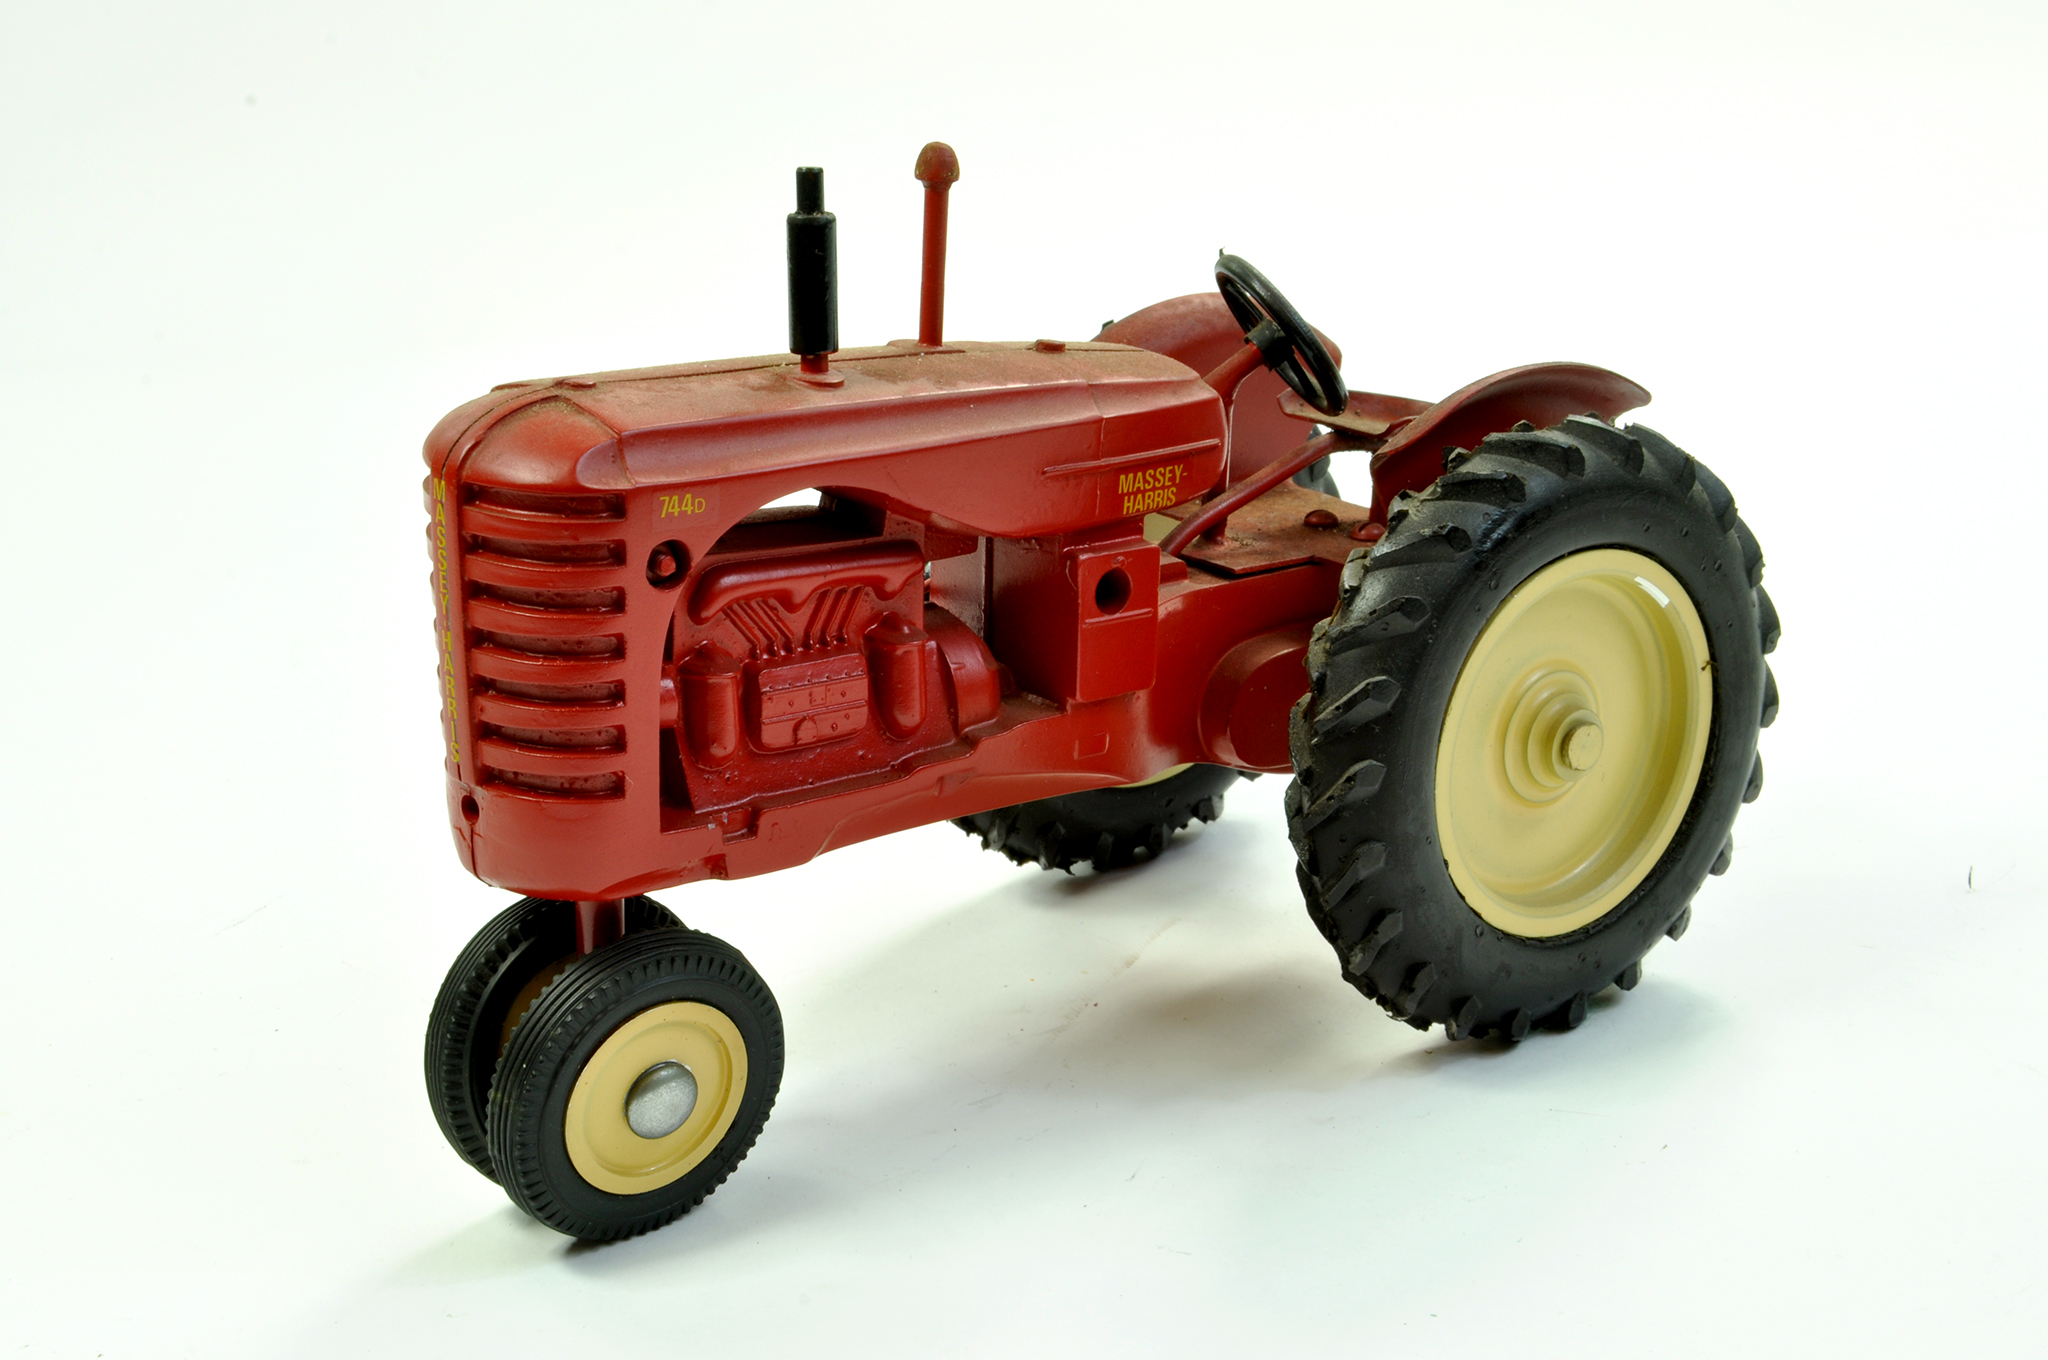 Lot 34 - Marbil Models 1/16 Massey Harris 744D Tractor on Row Crops. Generally Excellent, a little dusty.